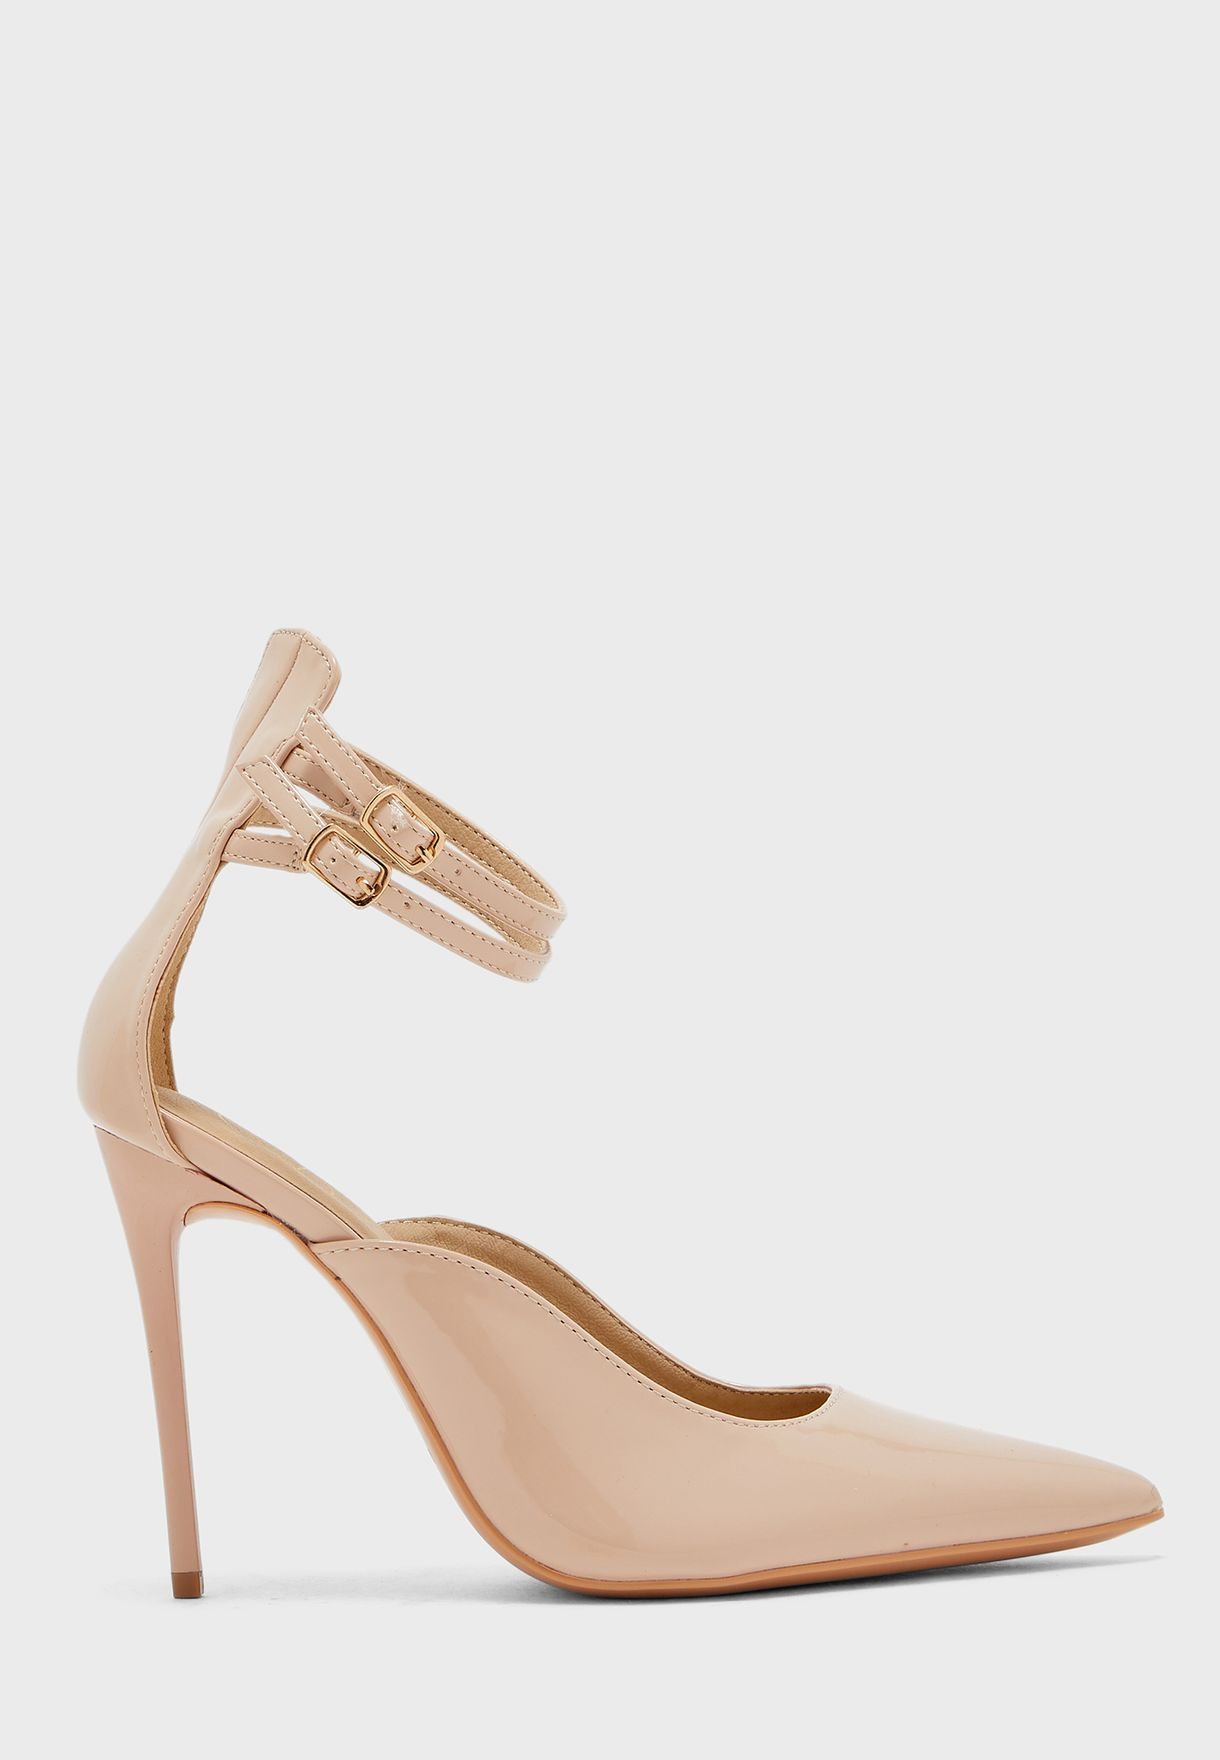 Double Ankle Strap Mid Heel Pump